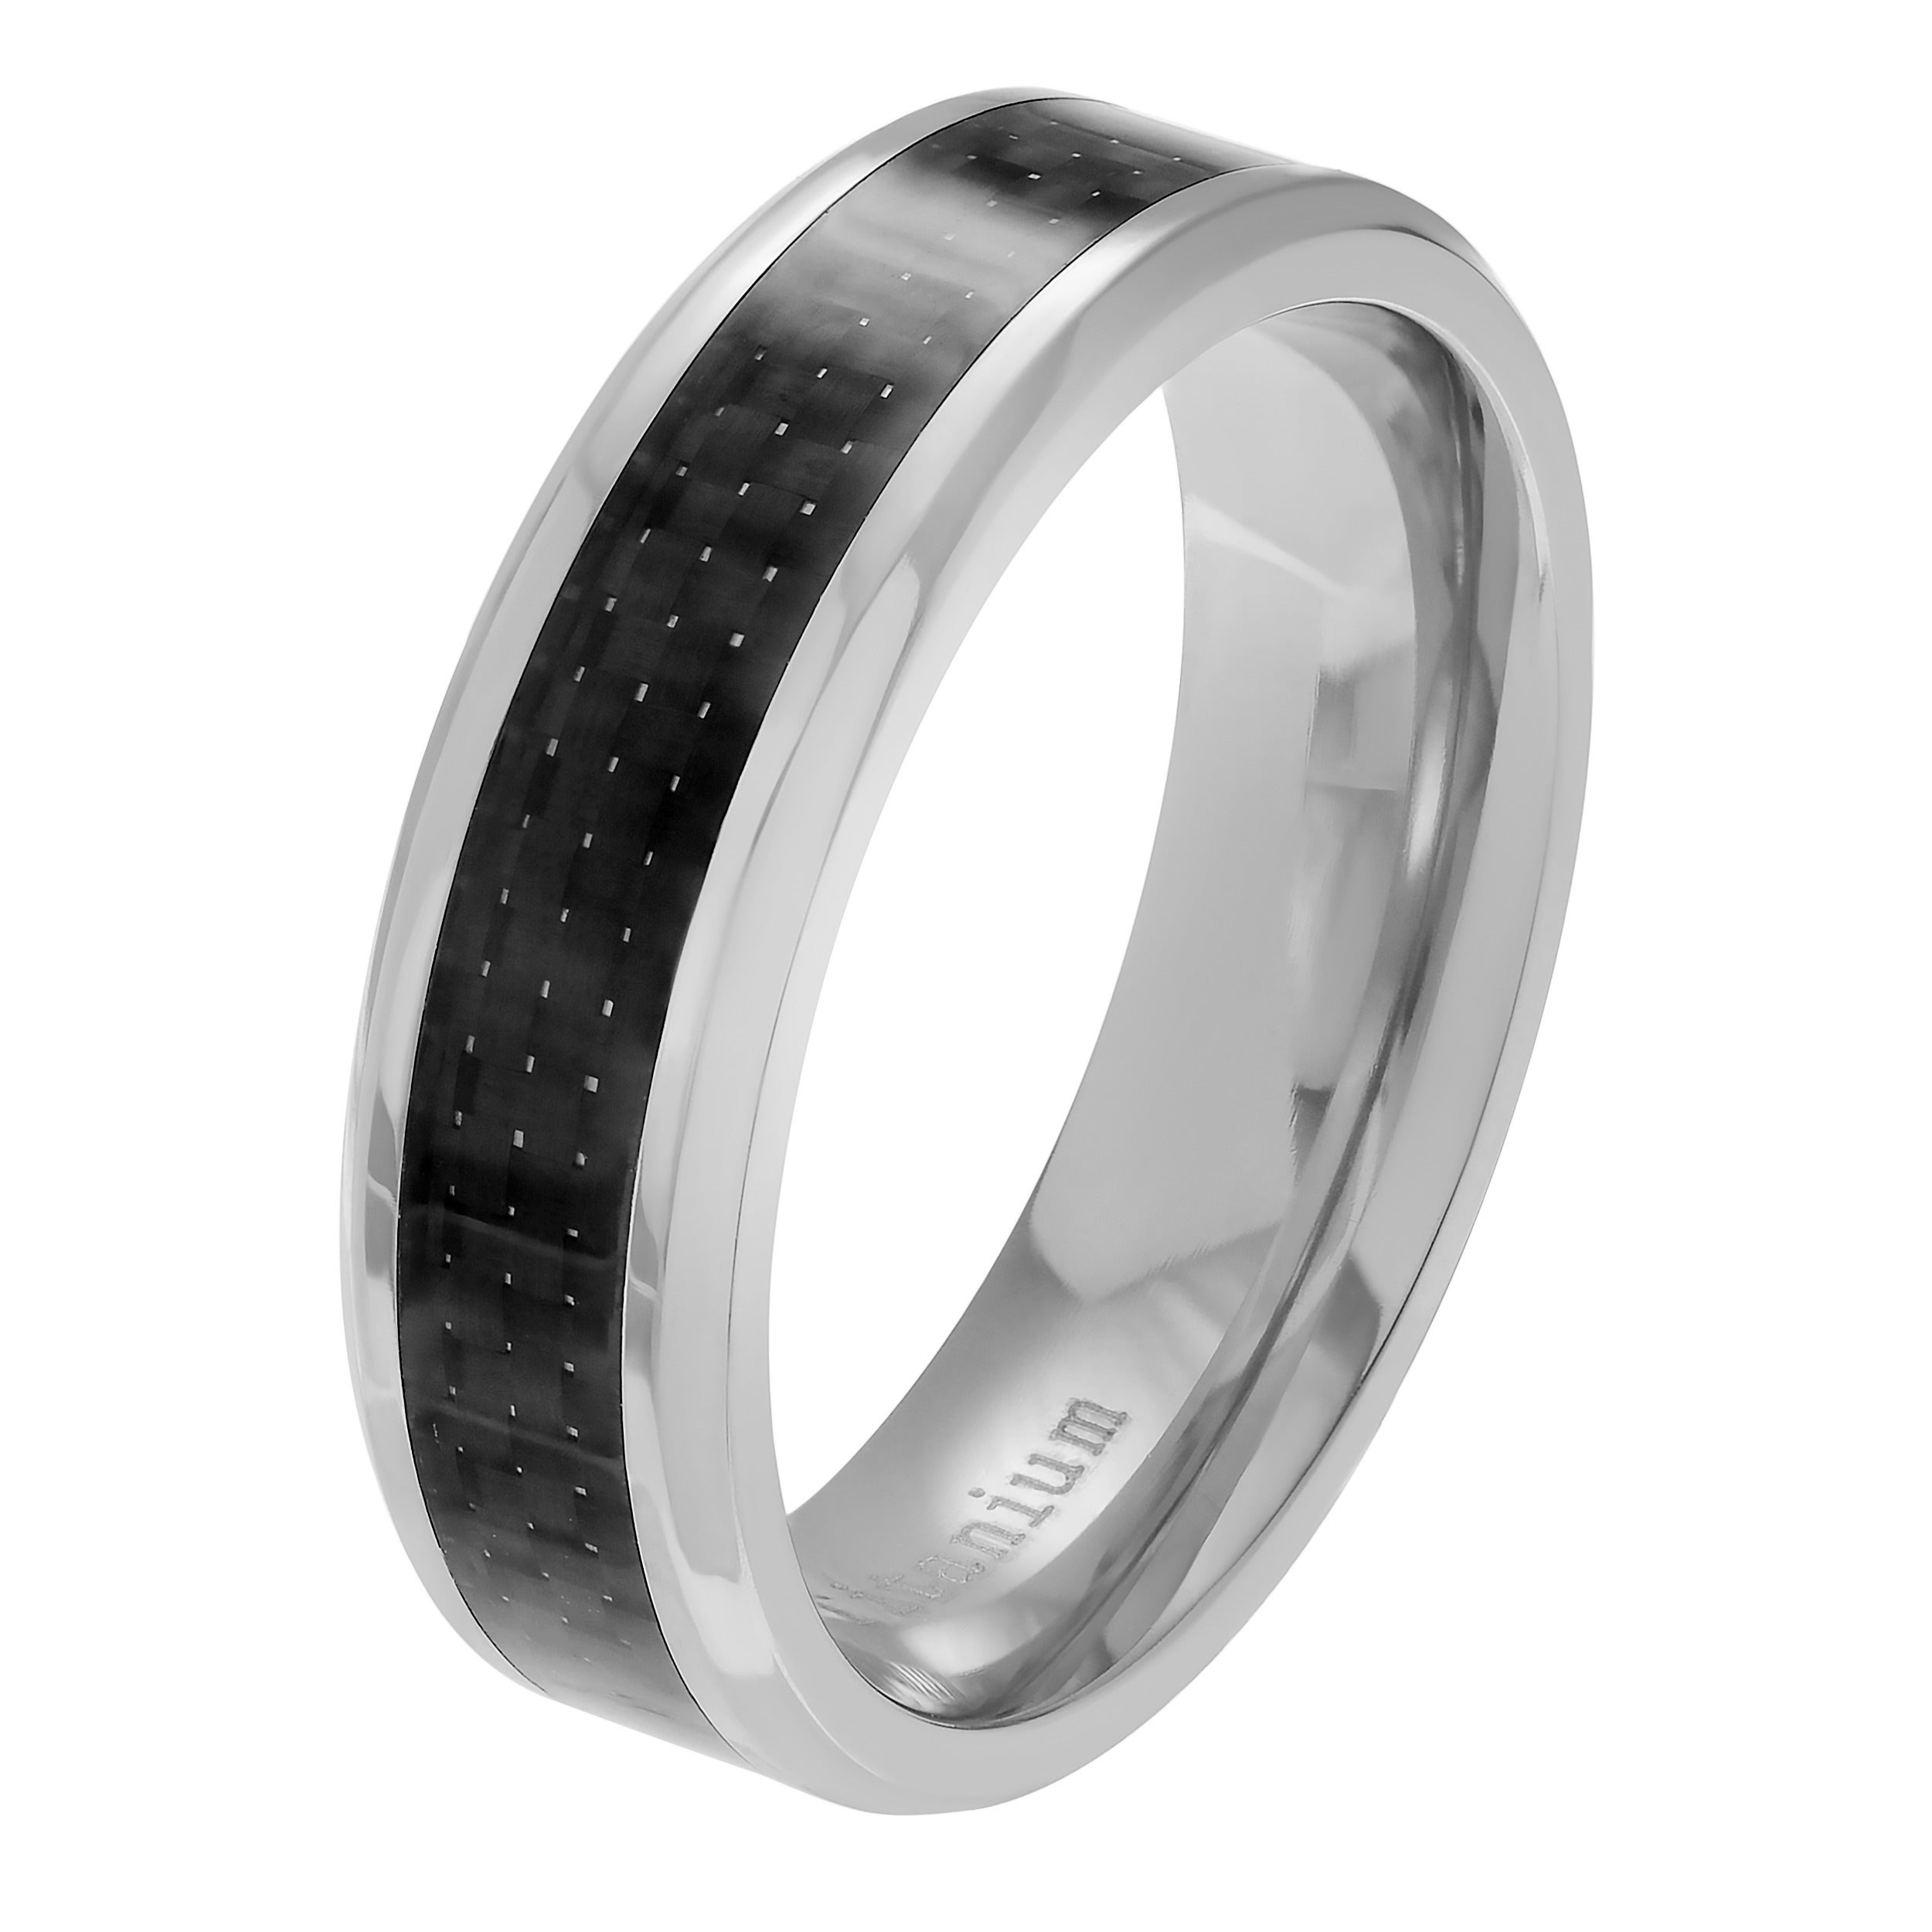 lake design carbon band set wedding fiber ring corrals inlay net side rings dragonclothing vwcxrjdn